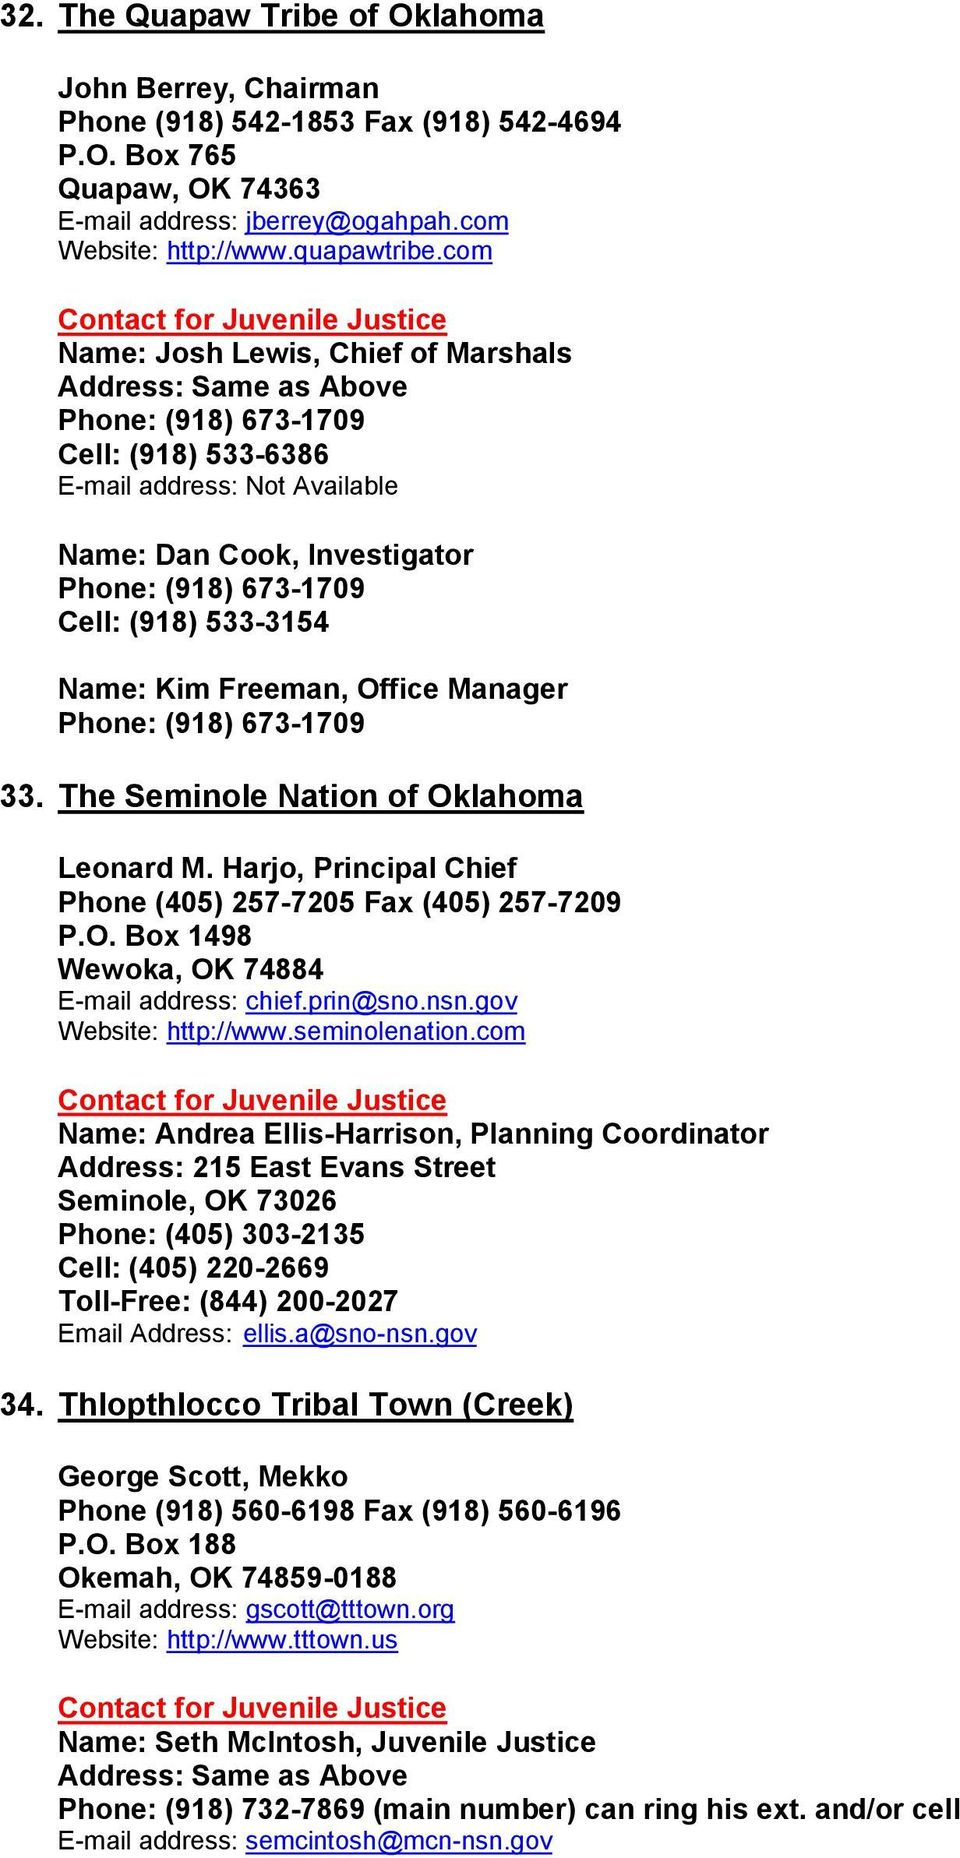 (918) 673-1709 33. The Seminole Nation of Oklahoma Leonard M. Harjo, Principal Chief Phone (405) 257-7205 Fax (405) 257-7209 P.O. Box 1498 Wewoka, OK 74884 E-mail address: chief.prin@sno.nsn.